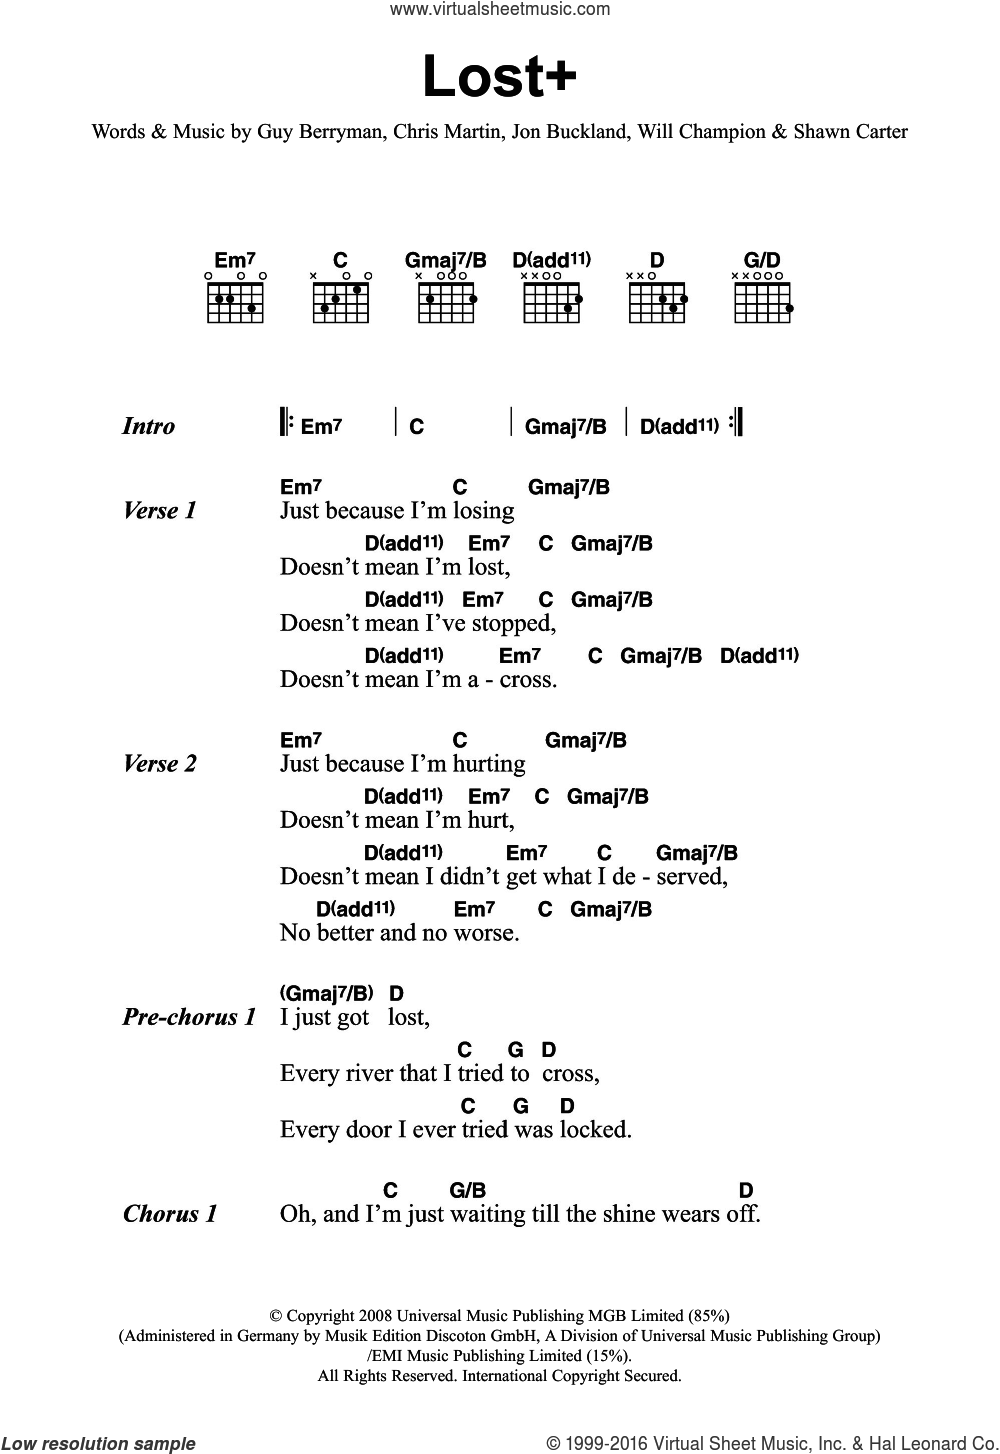 Lost+ (featuring Jay-Z) sheet music for guitar (chords) by Will Champion